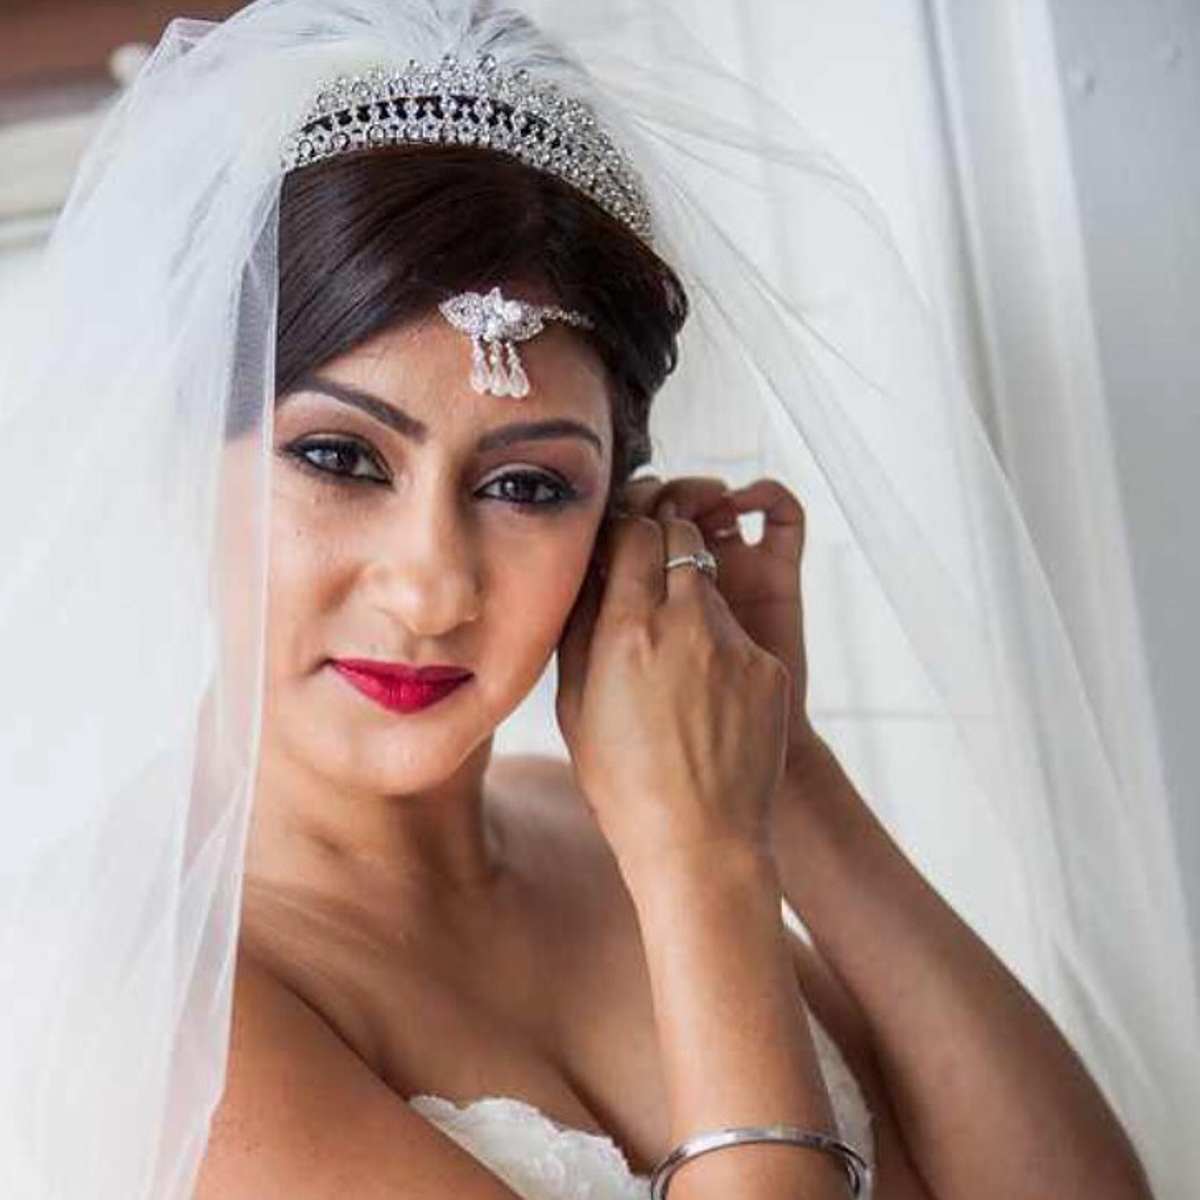 Bridal hair and makeup at Bickey Manor